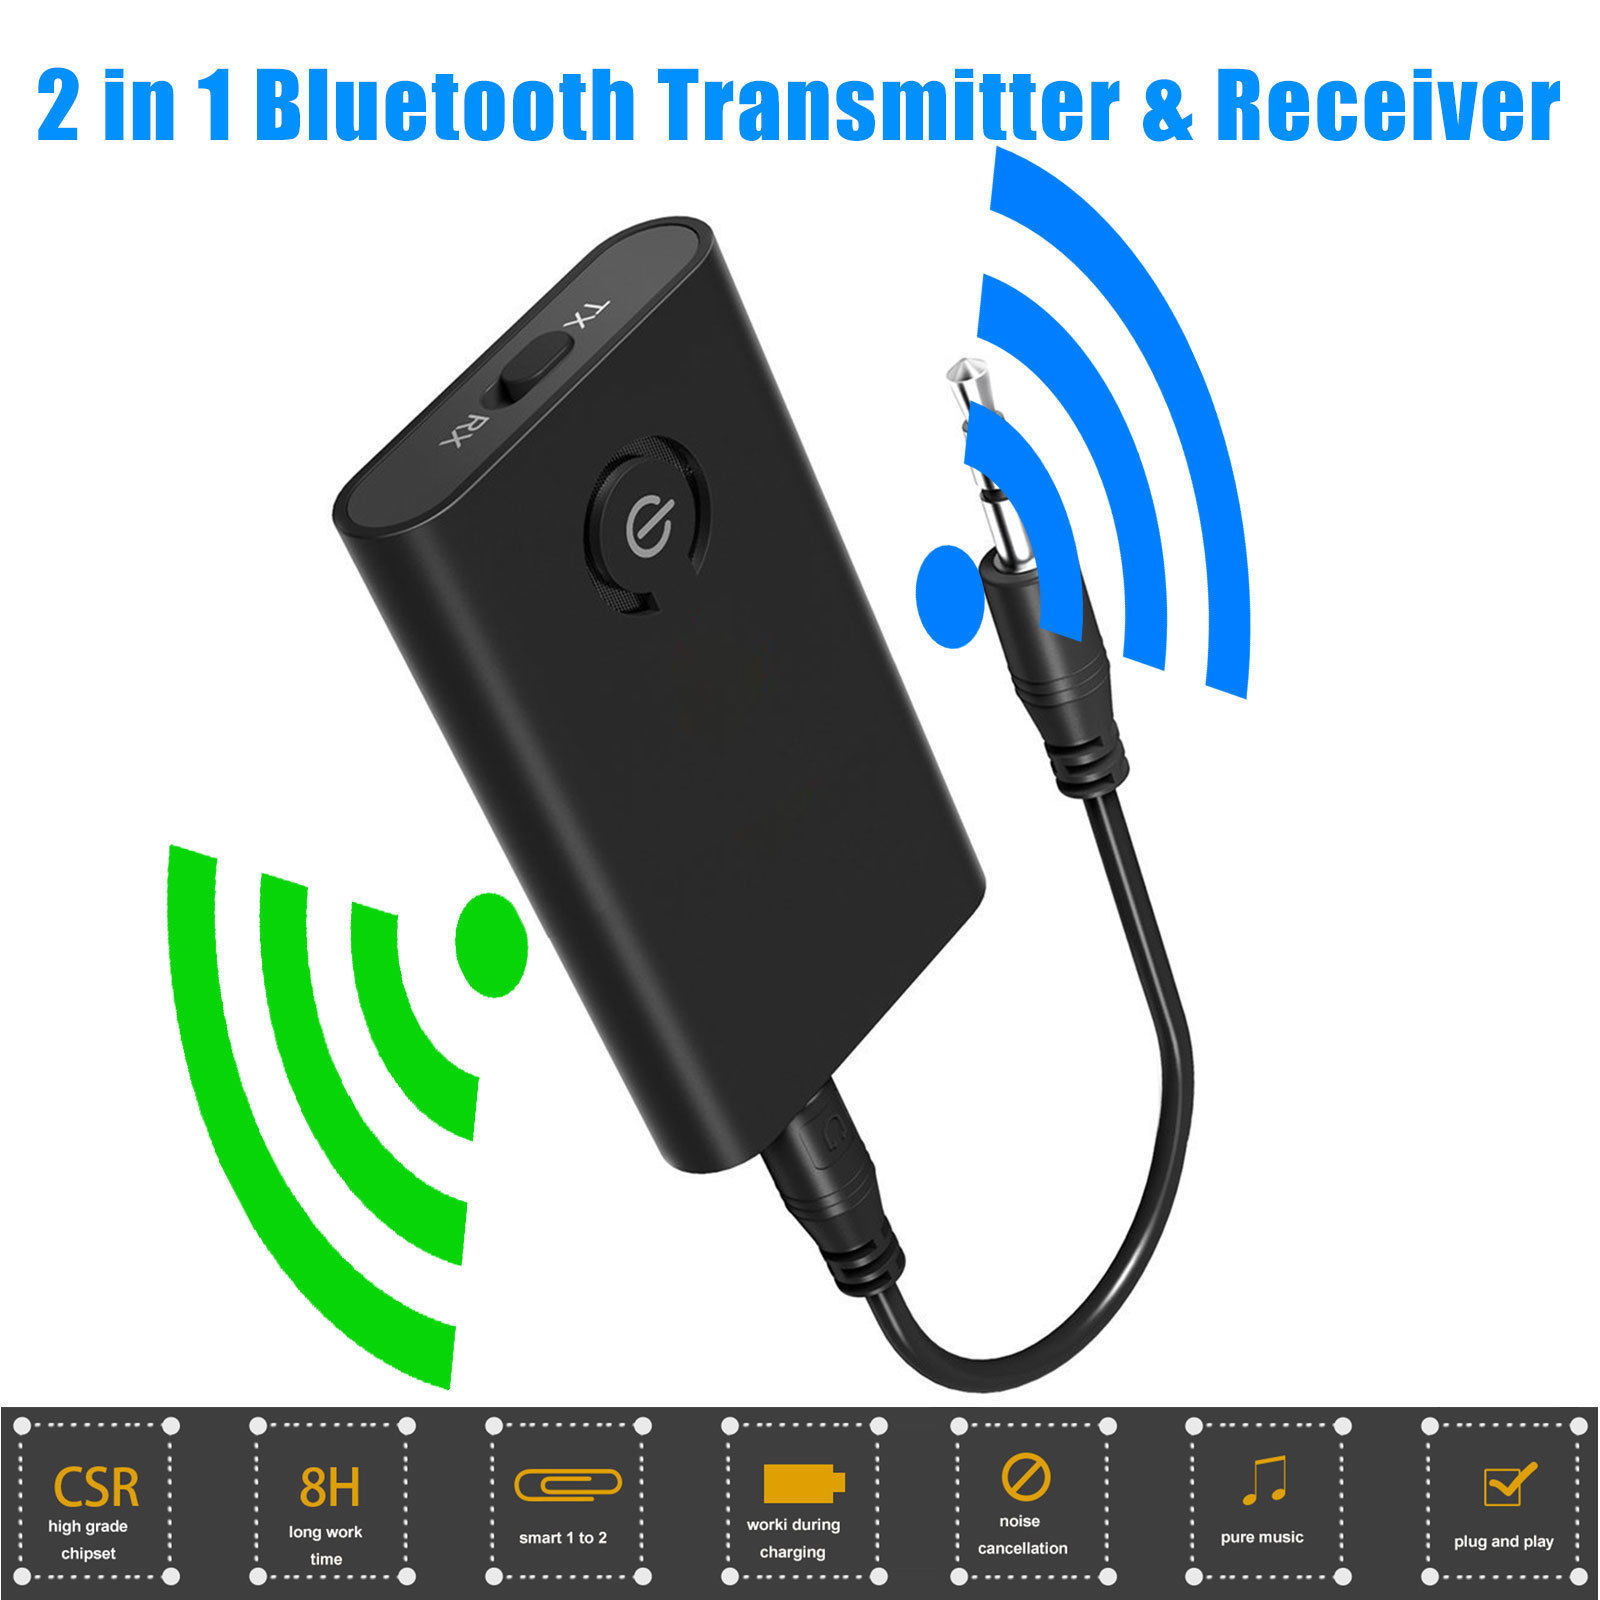 EEEKit Bluetooth Receiver and Transmitter, 2 in 1 Wireless Bluetooth Transmitter + Receiver A2DP Stereo Audio Music Adapter